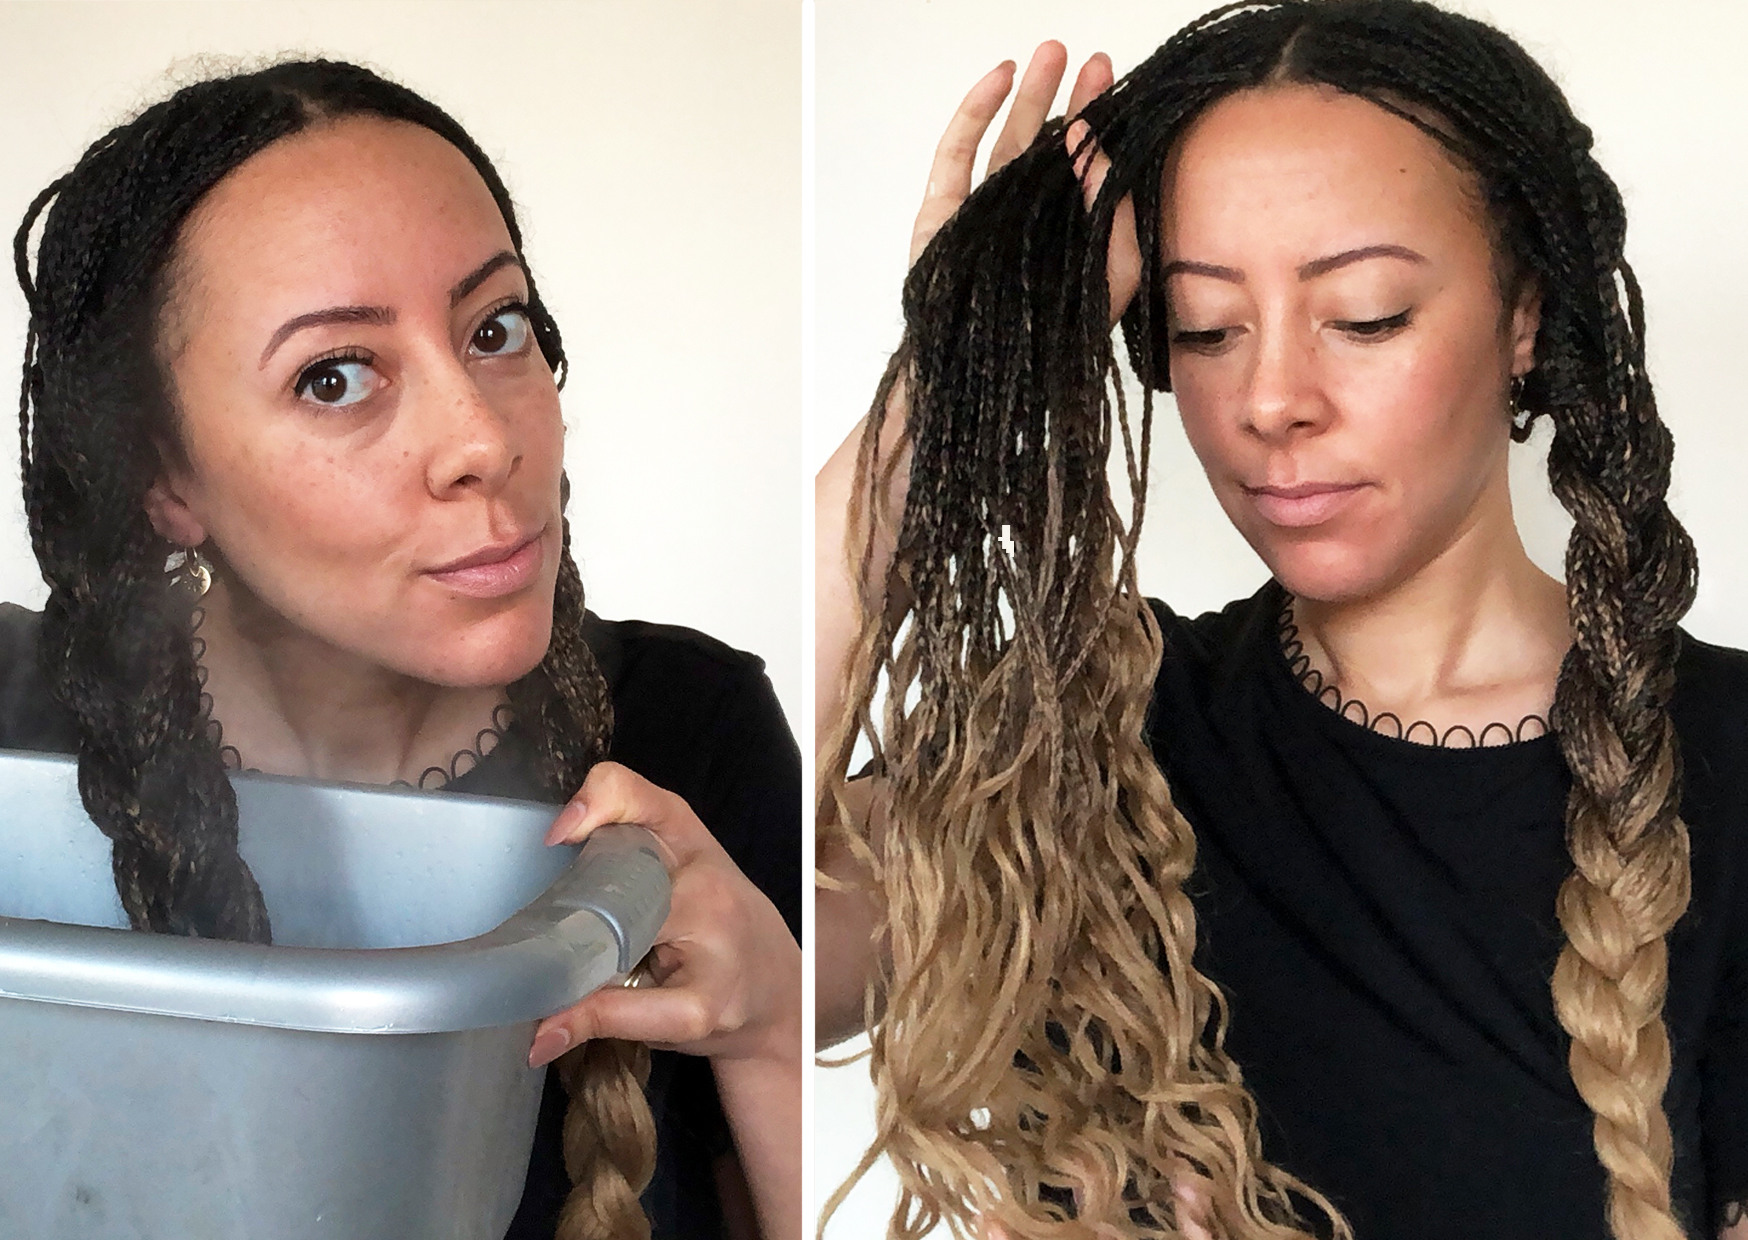 Dunk the two big braids into boiling water (be careful). Pat dry then undo and the waves will stay.